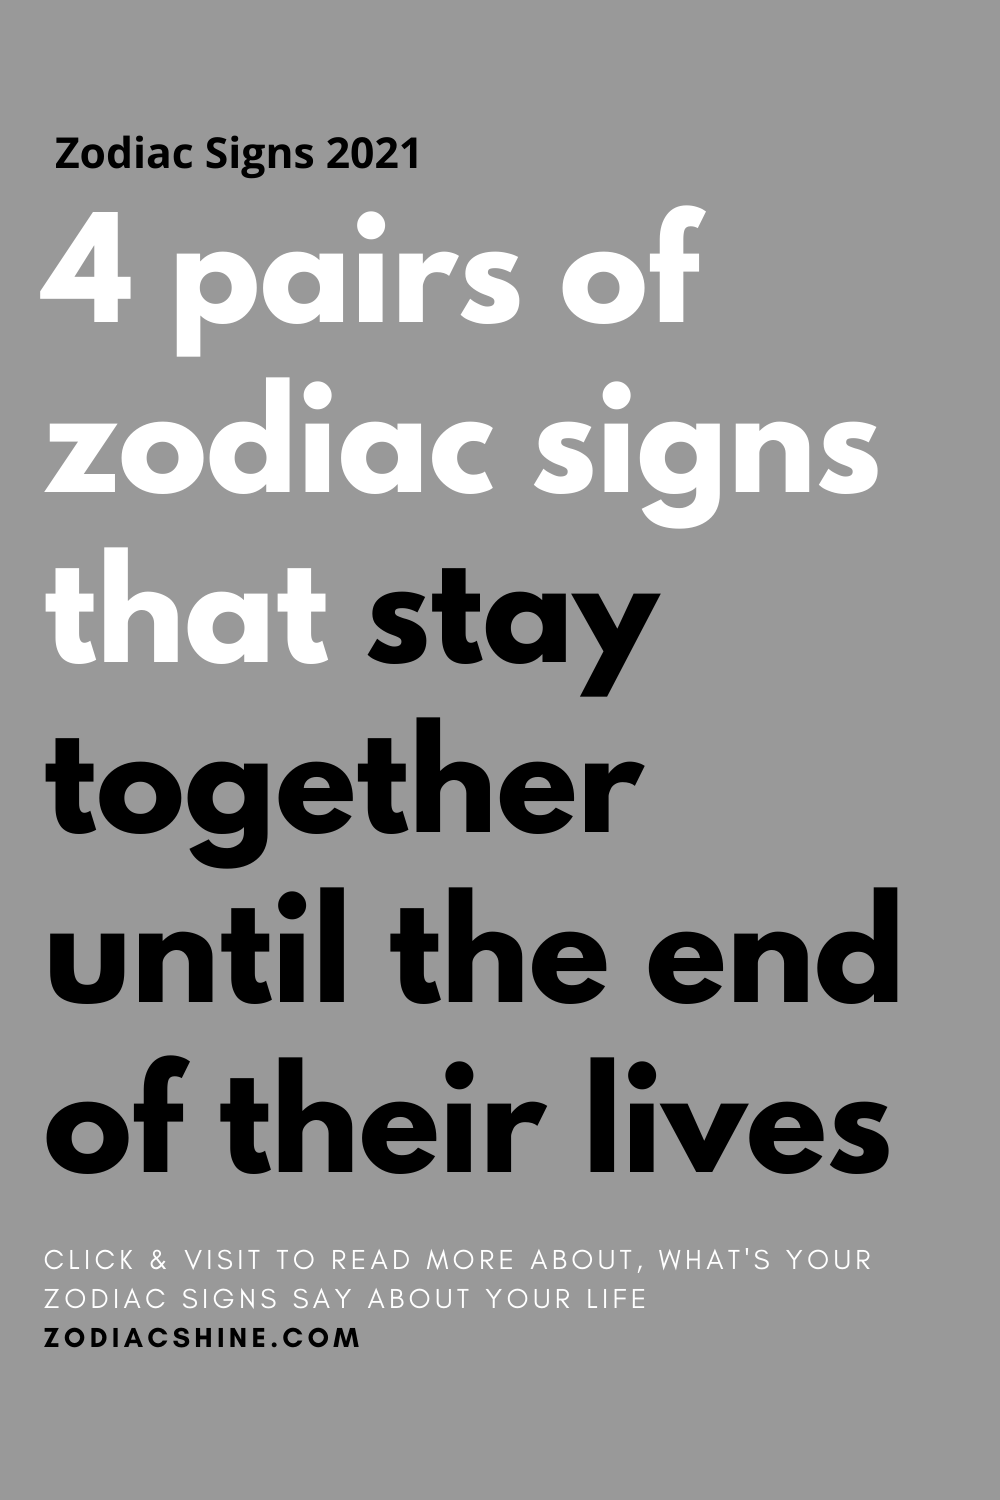 4 pairs of zodiac signs that stay together until the end of their lives